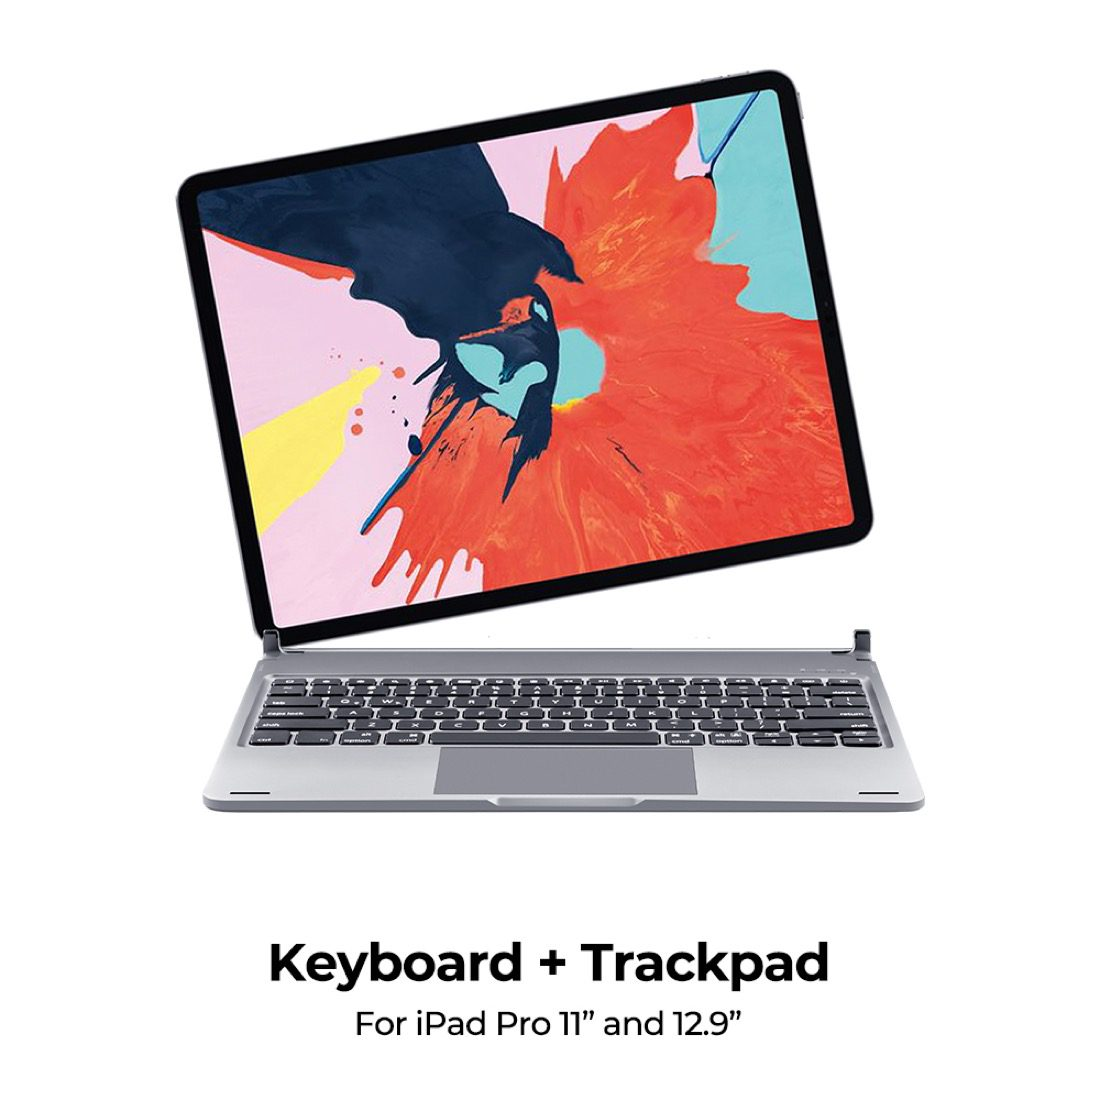 Get your typey-tappy on with the Libra iPad Pro keyboard